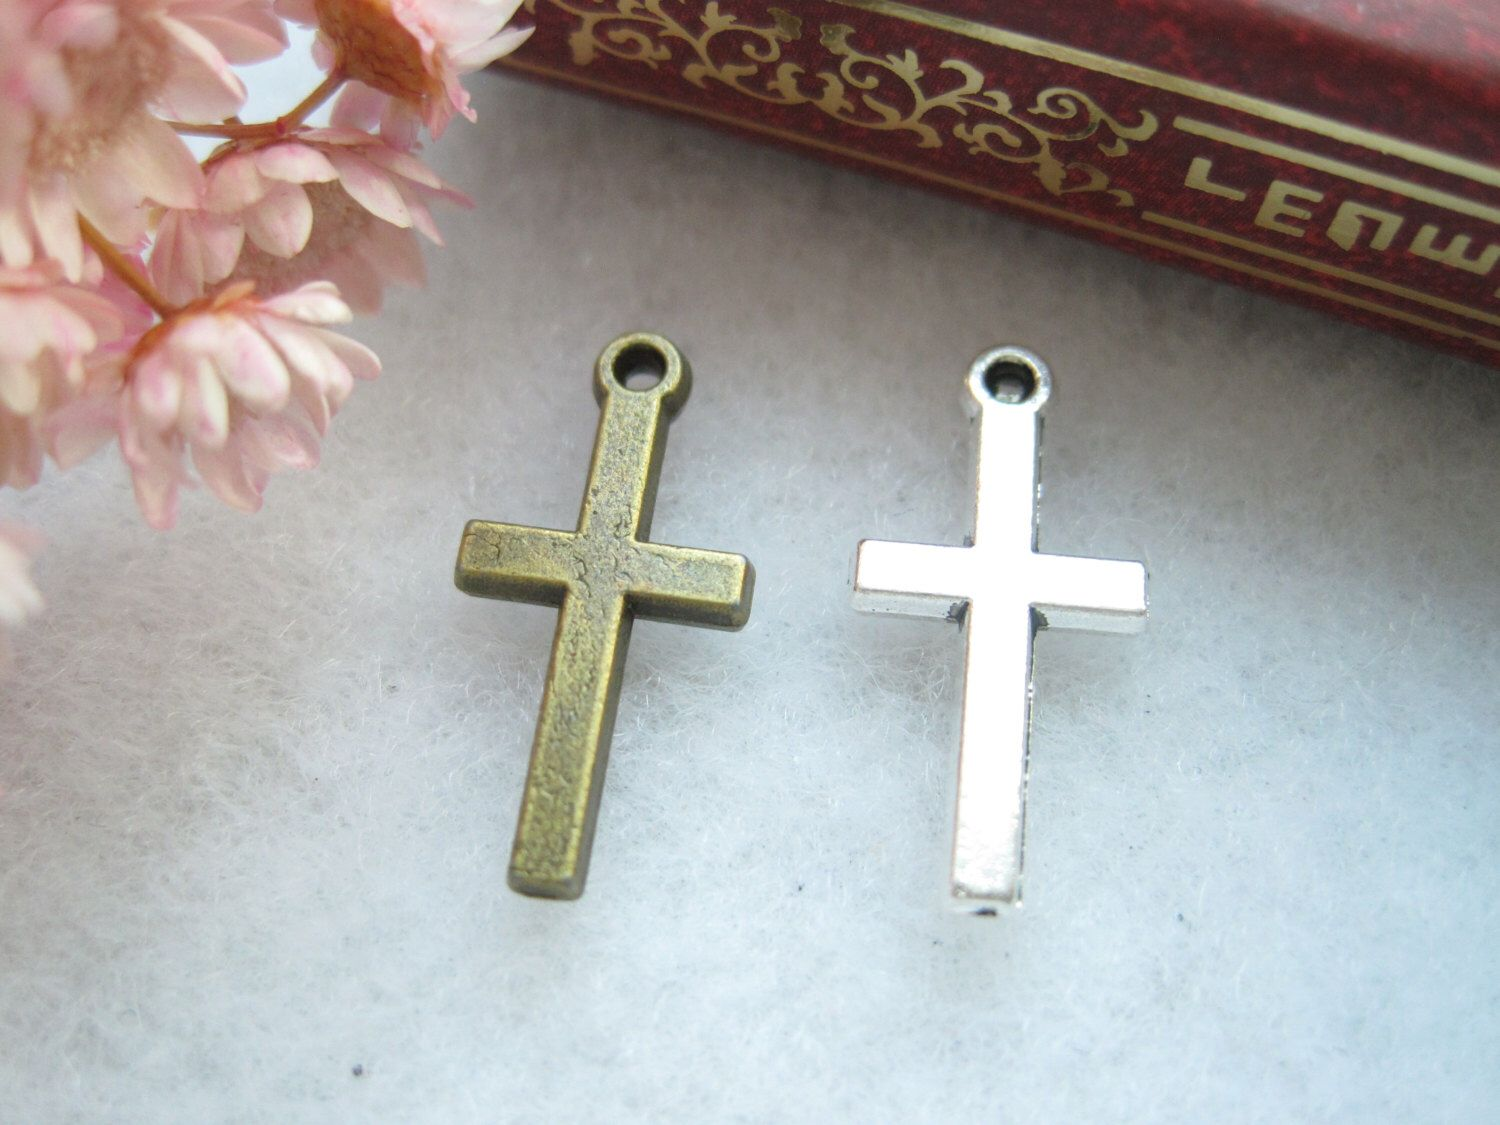 50pcs 19x9mm Antique silver/ bronze cross charms, cross pendant Jewelry findings xd9081 by LHHL on Etsy https://www.etsy.com/ca/listing/280340192/50pcs-19x9mm-antique-silver-bronze-cross